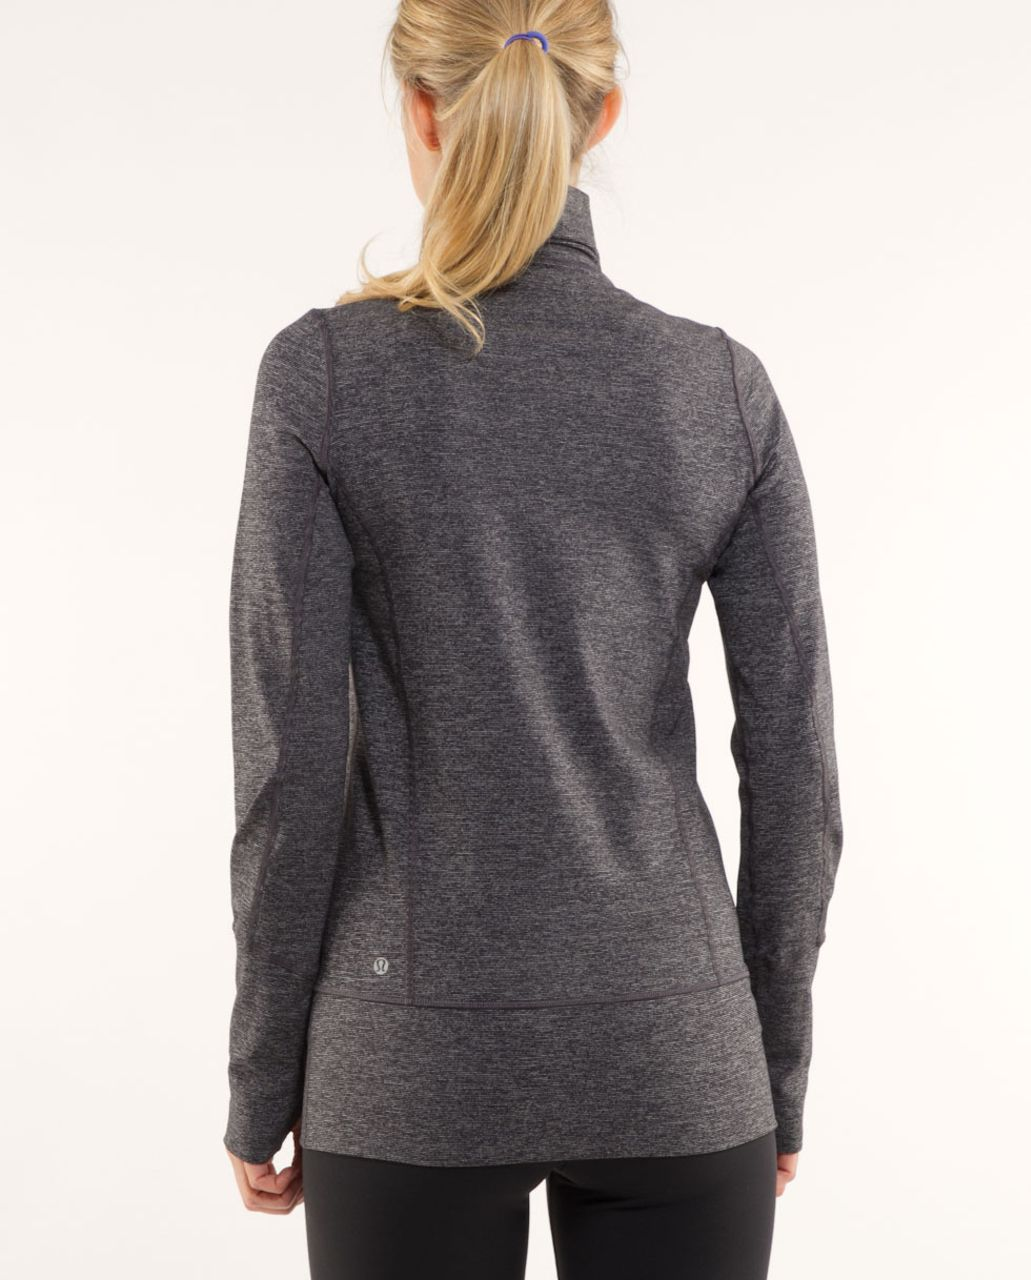 Lululemon In Stride Jacket - Coal Wee Stripe /  Coal